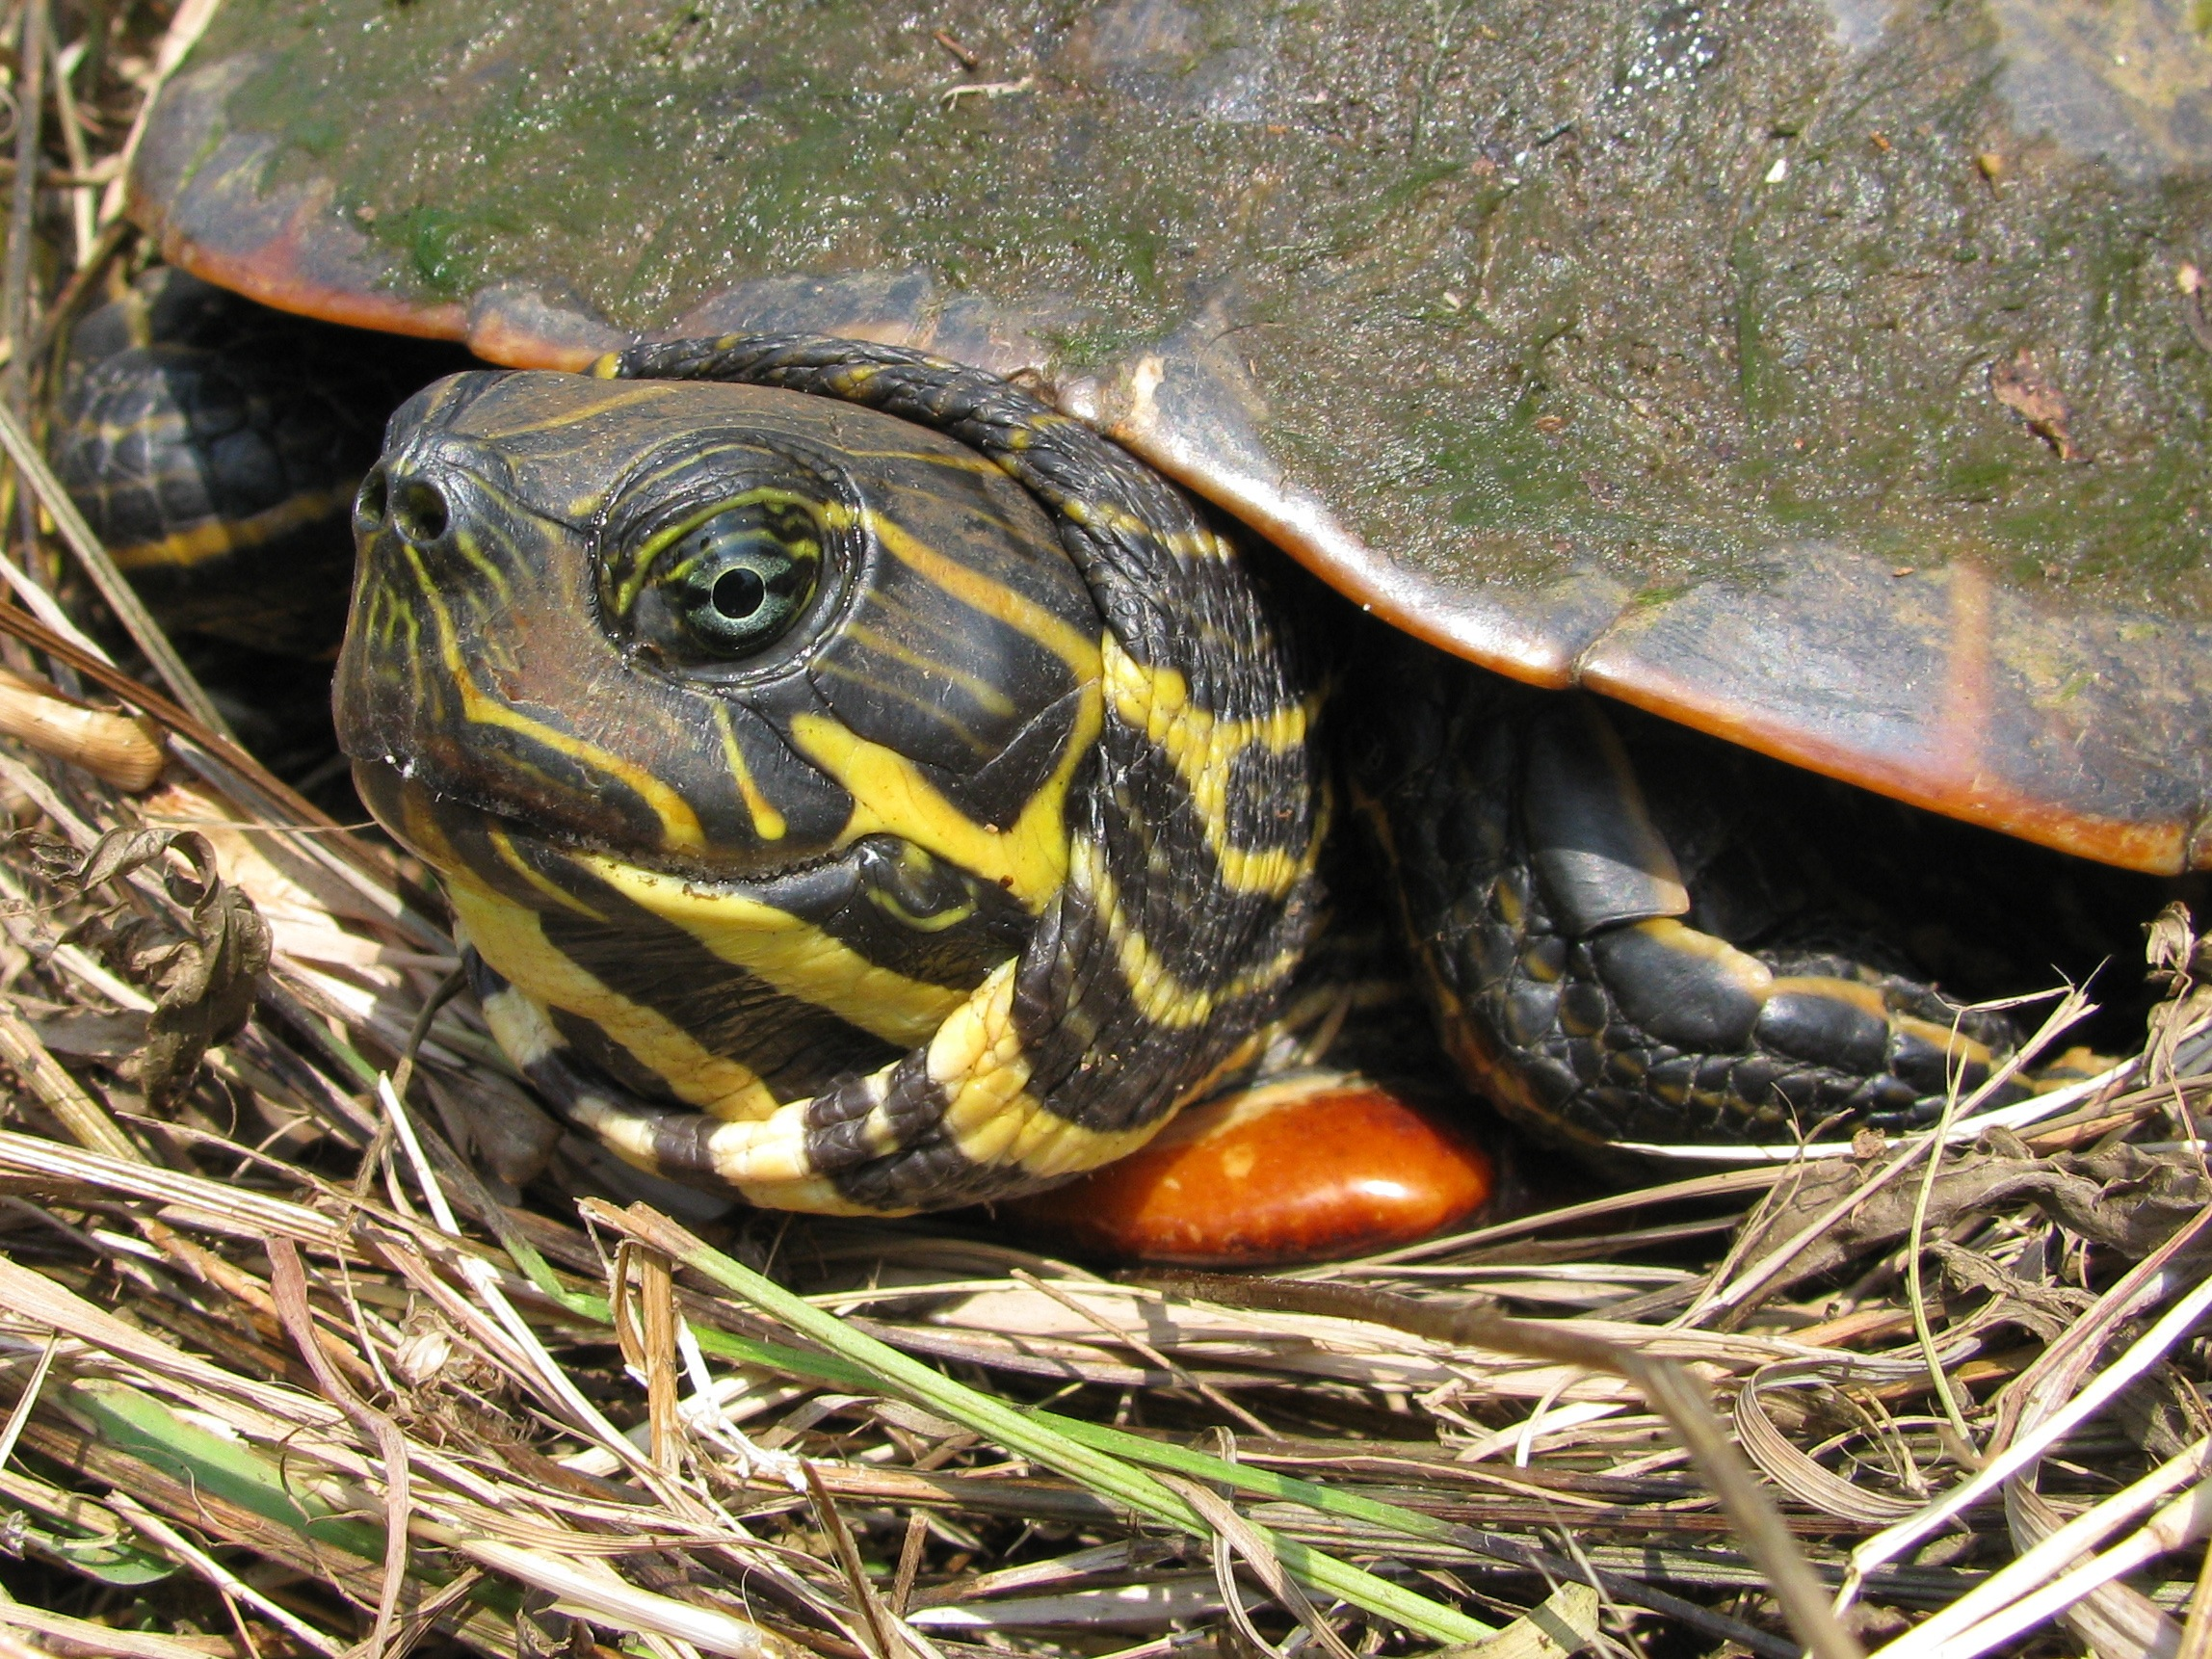 Slider Turtle (Family Emydidae)   Pics4Learning - photo#8